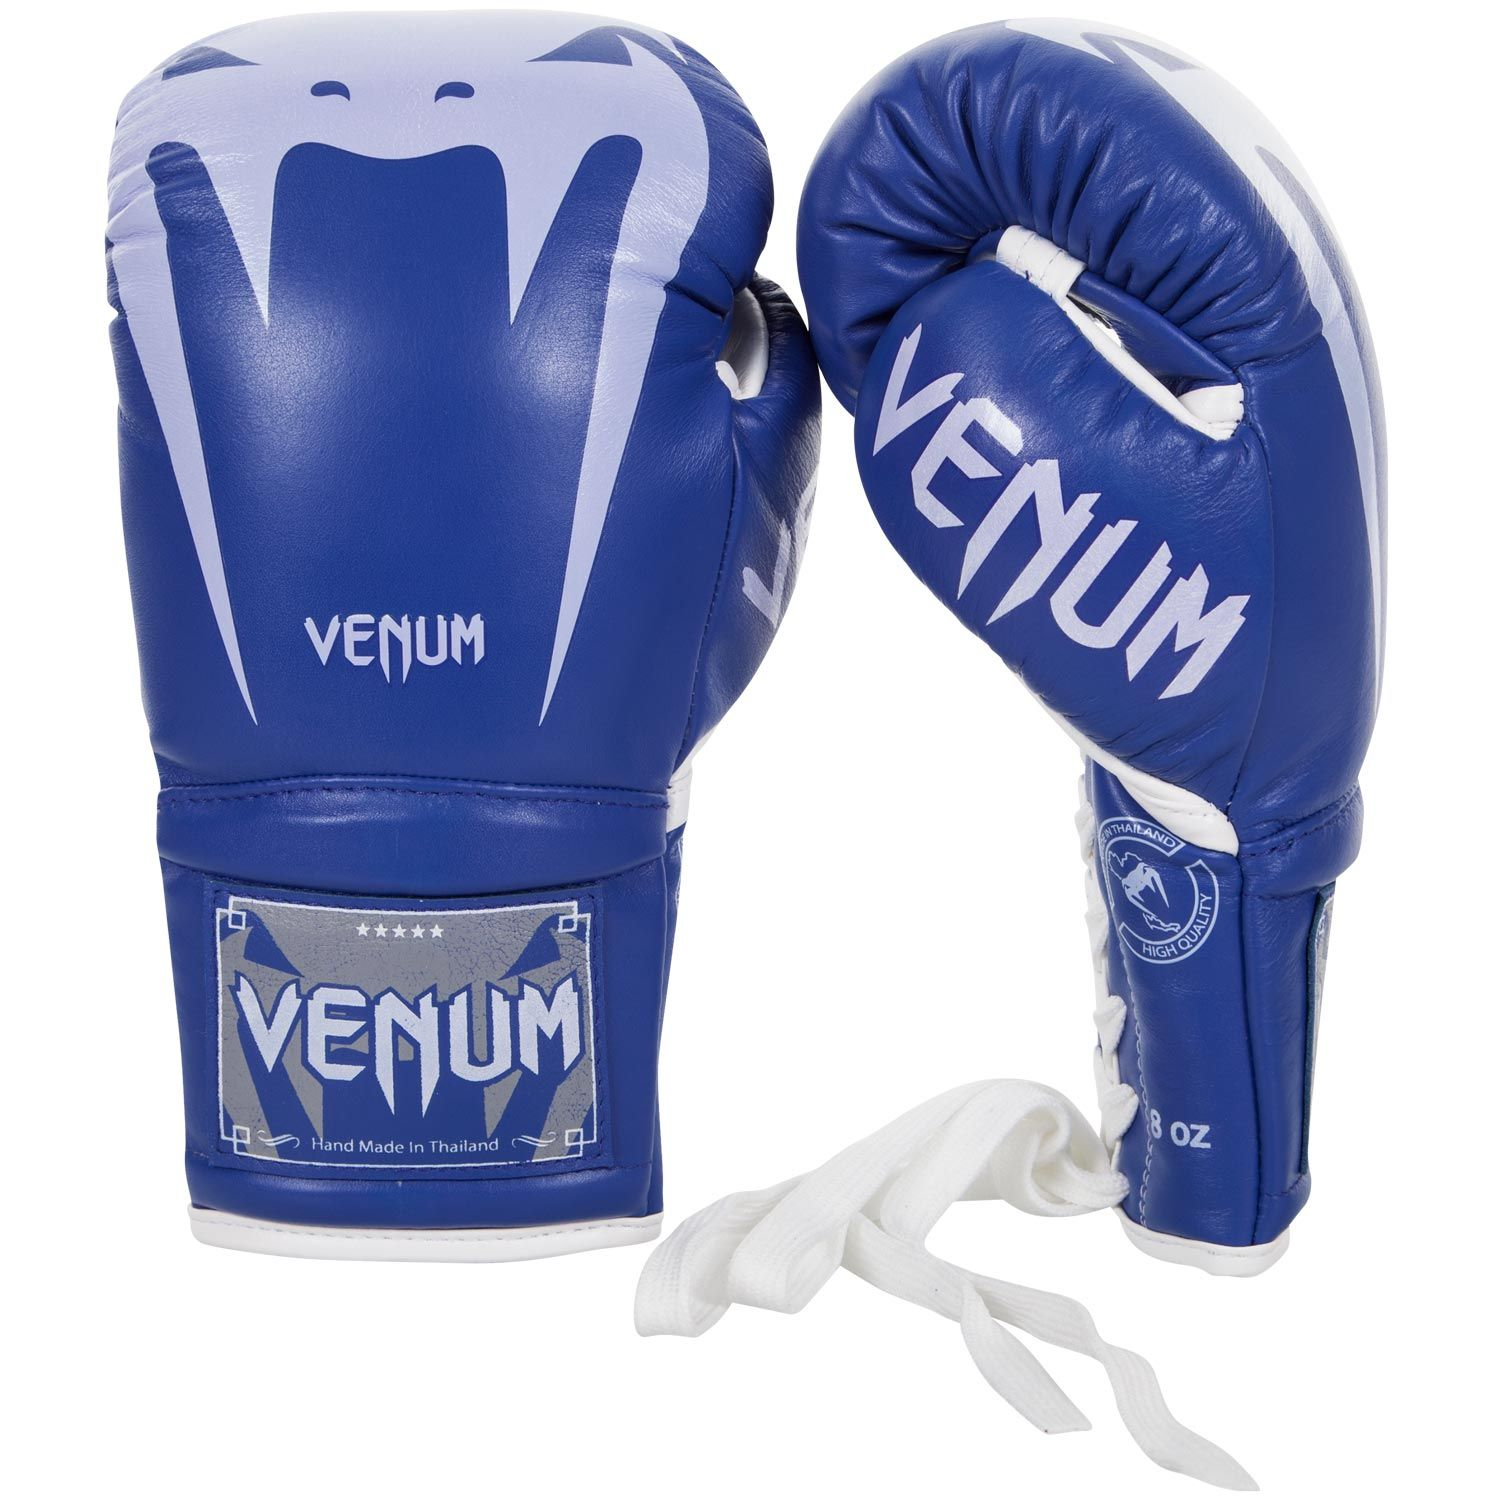 Venum Giant 3.0 Boxing Gloves - Nappa Leather - With Laces - Blue